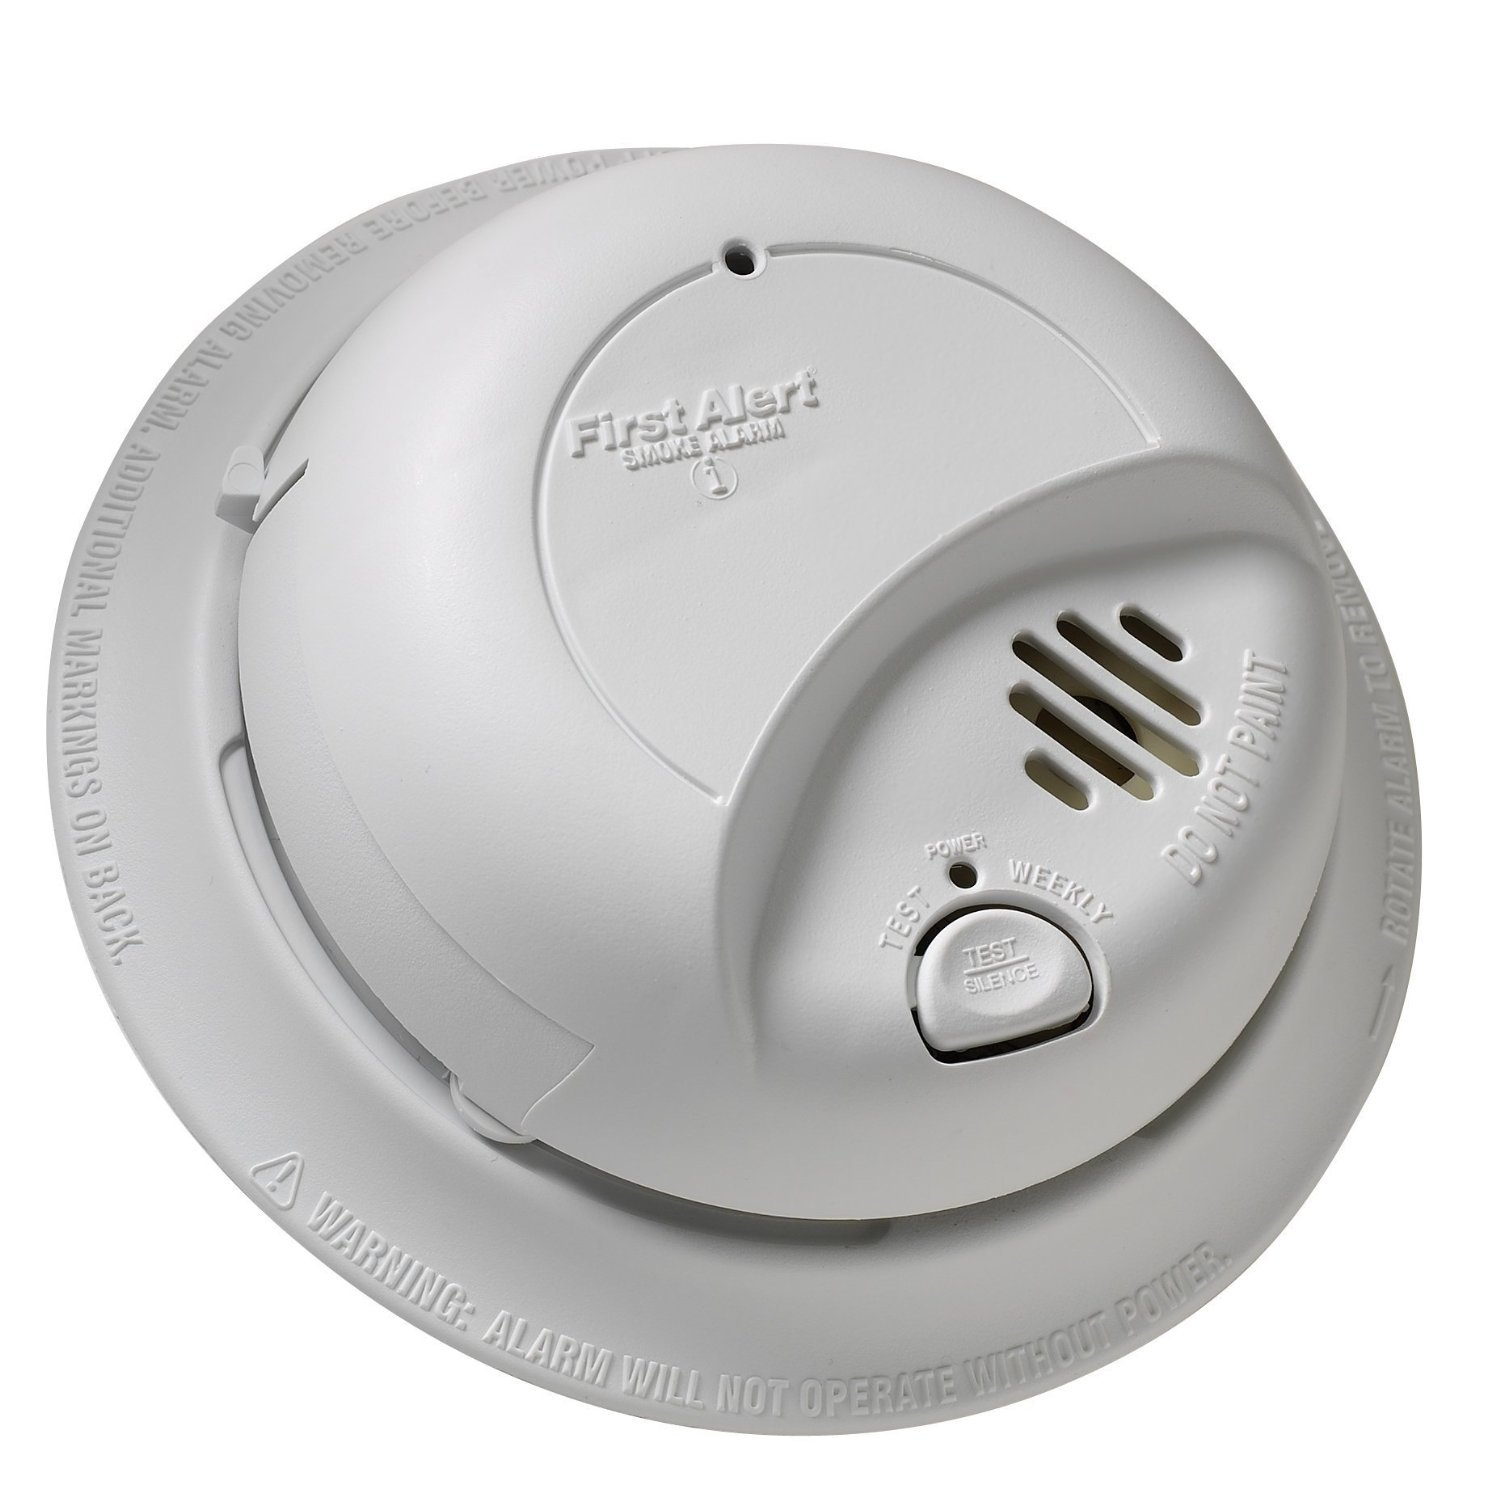 wrg 5624] firex smoke detector wiring diagramthis hardwired smoke alarm features a battery backup so you can rest assured your home is